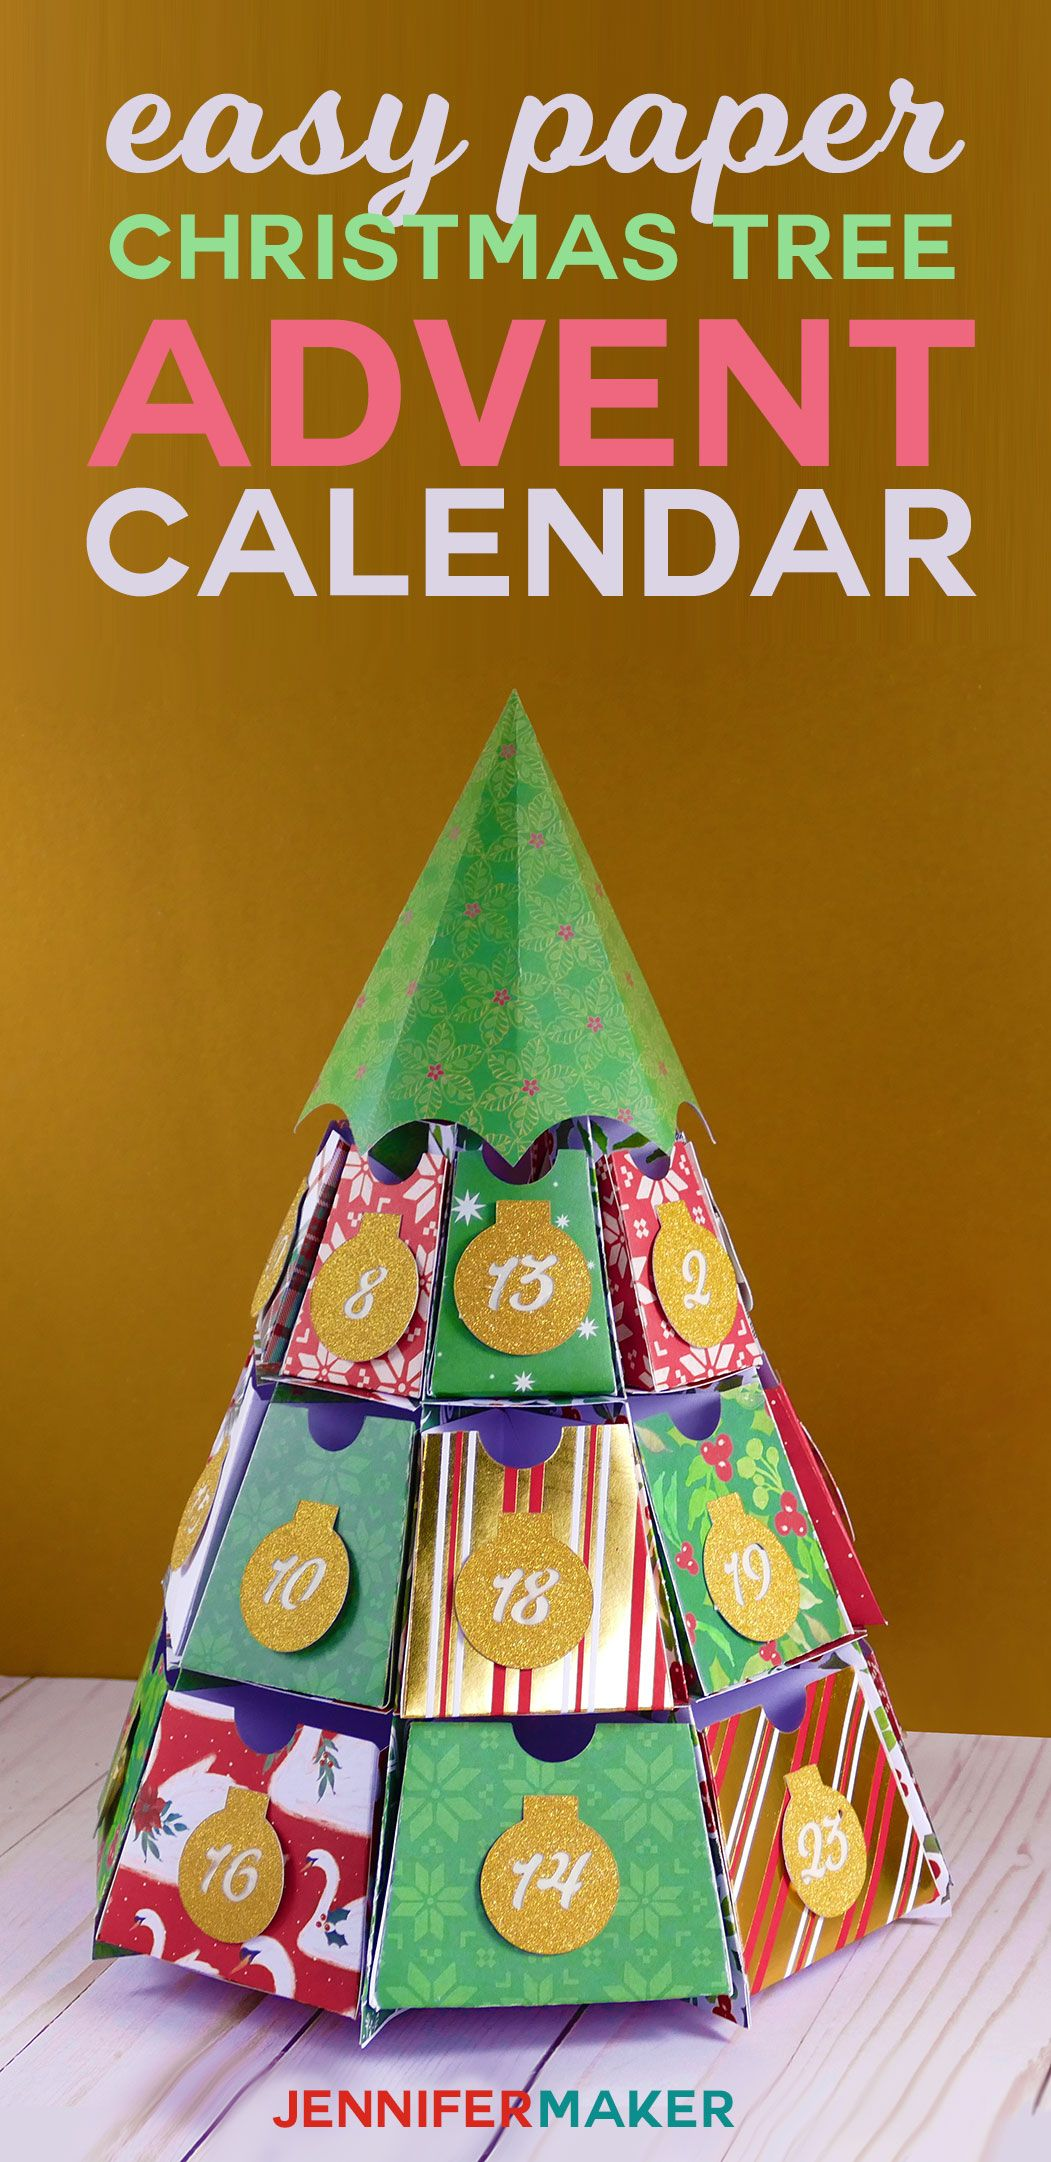 Christmas Tree Advent Calendar 25 Days of Maker Projects